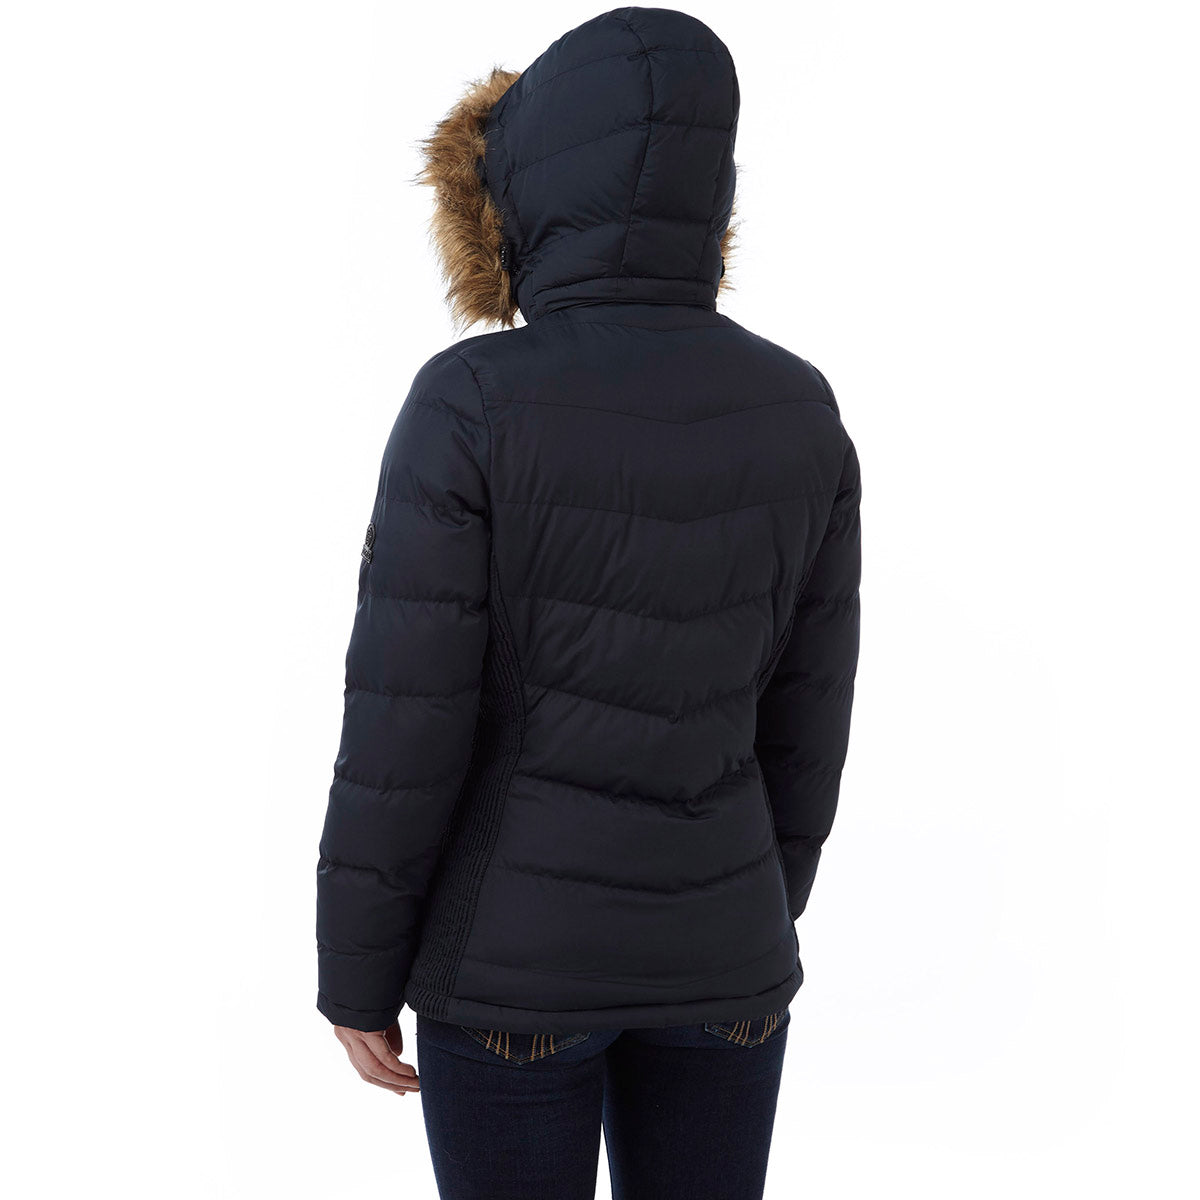 York Womens TCZ Thermal Jacket - Navy image 4